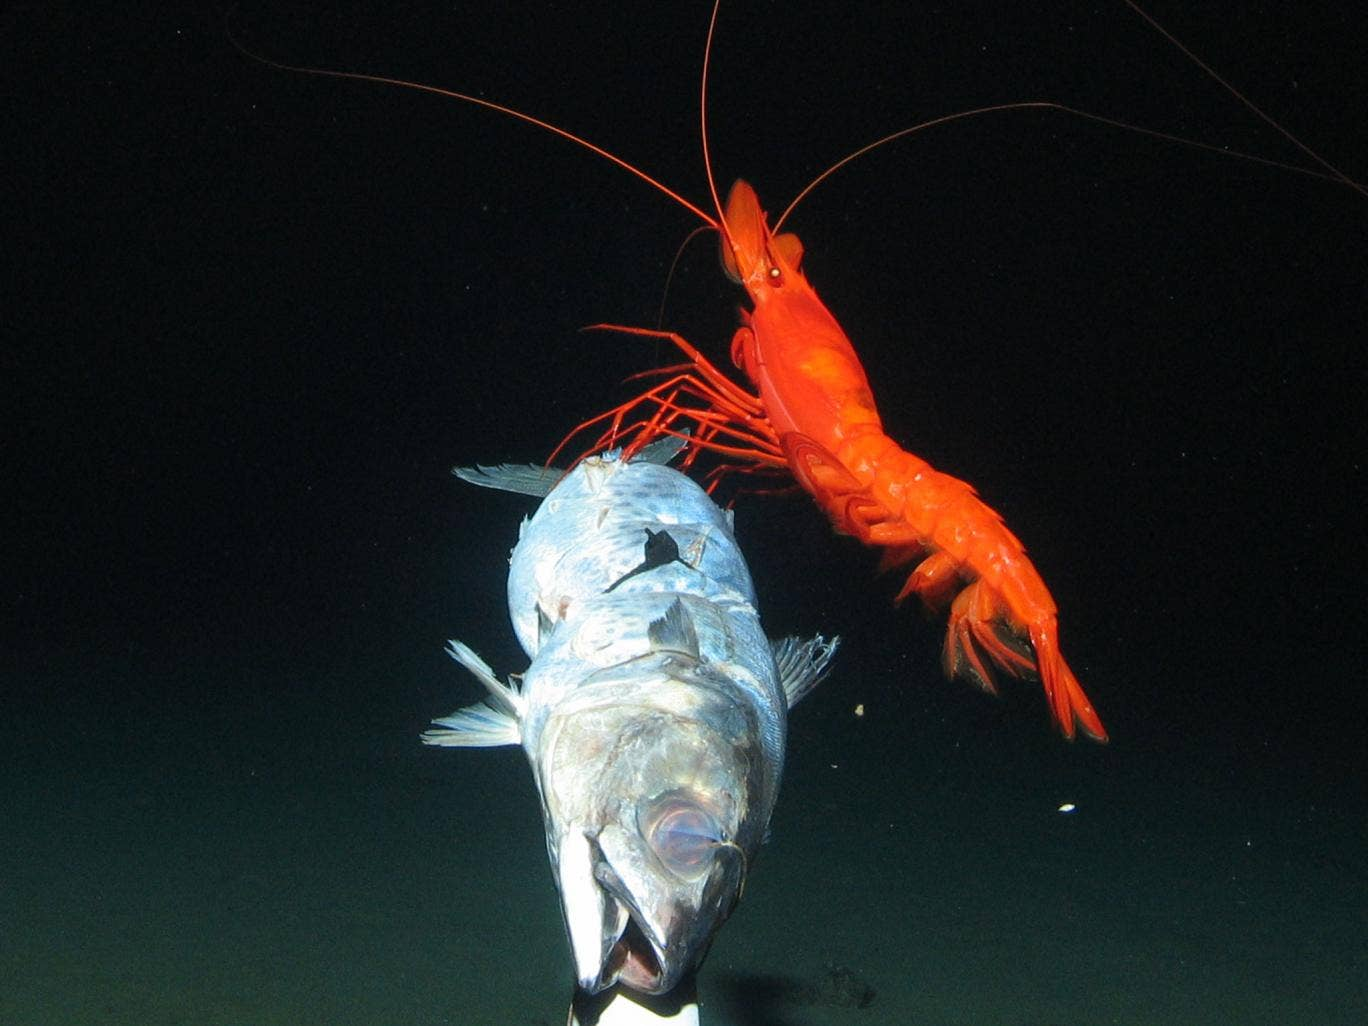 A large prawn feeding at bait 7,000 metres under Pacific Ocean